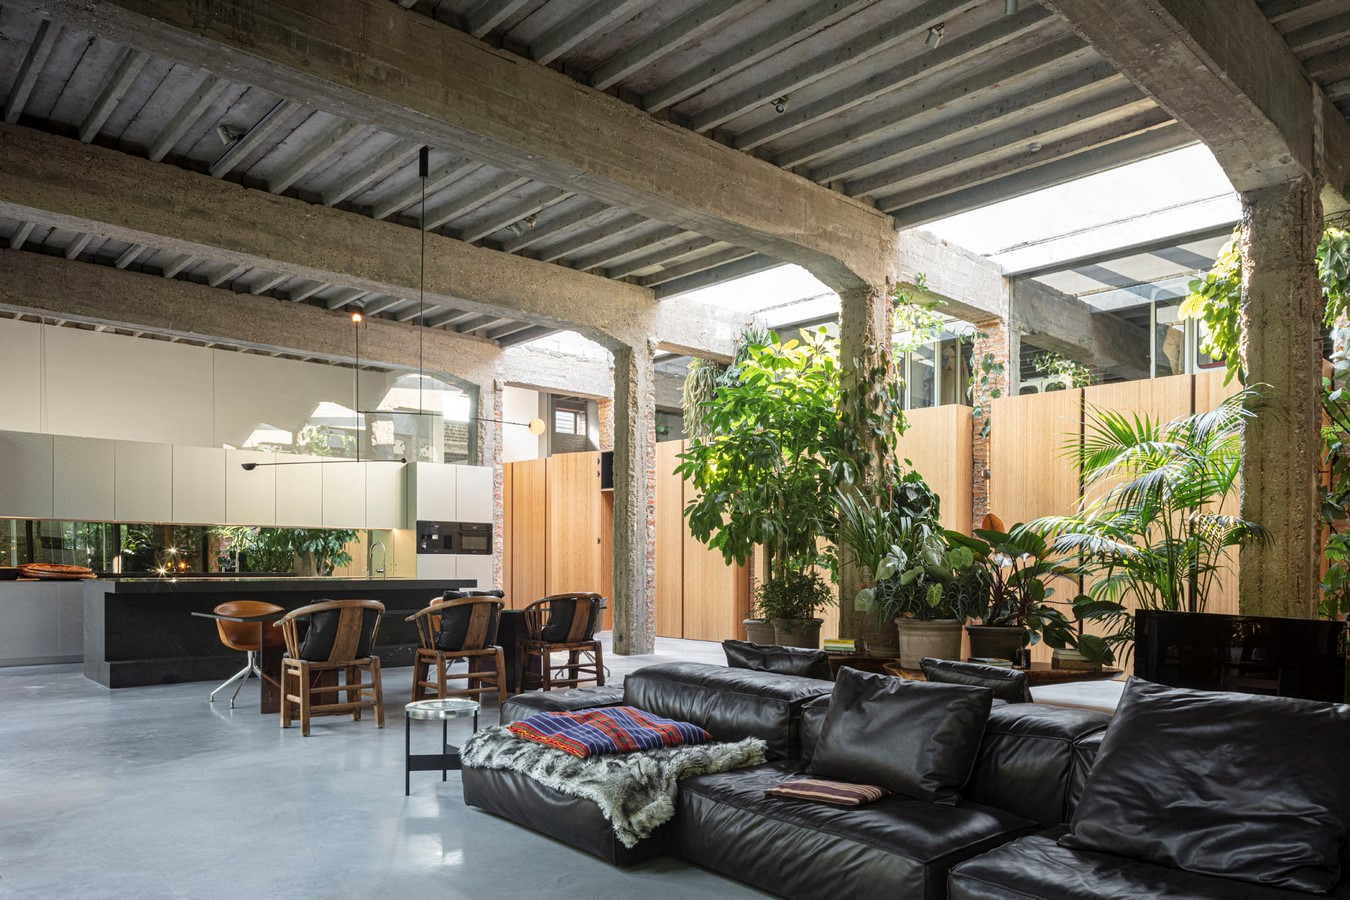 Abandoned 1940s Sports Building converted into New Villa With Naked Brick Walls by MASA Architects - Sheet2